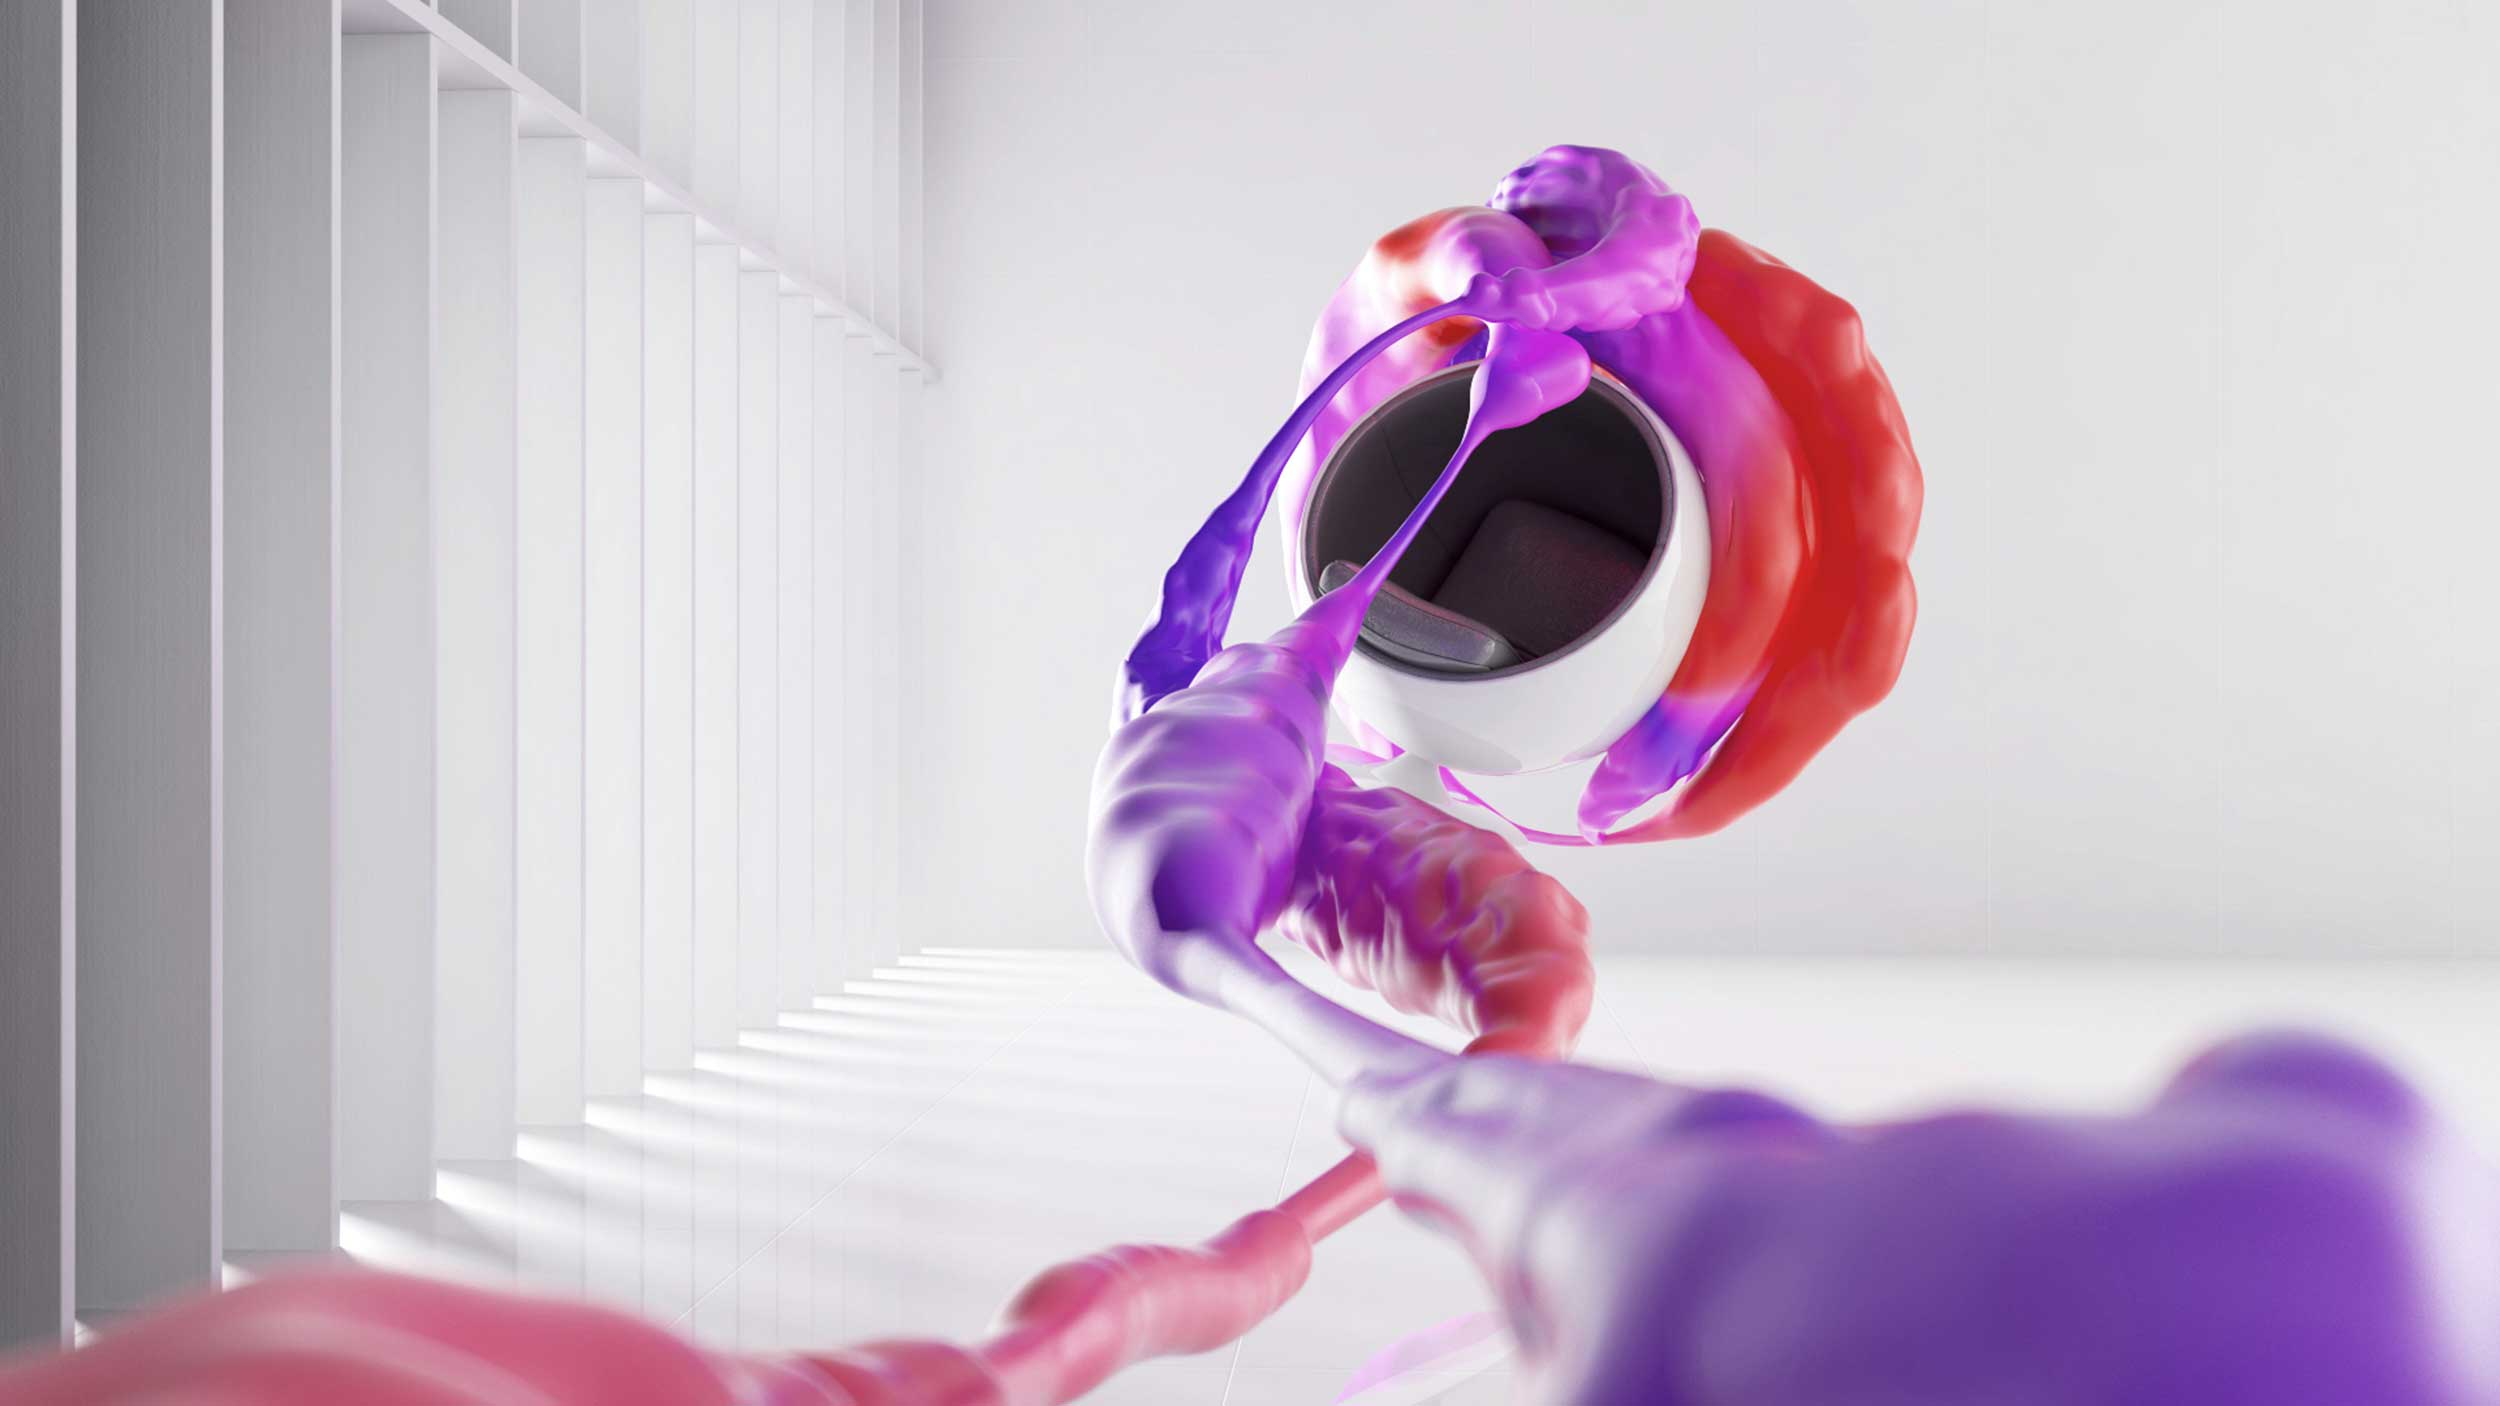 cgi-liquid-splash-red-and-purple-wave-of-liquid-paint-grabbing-coffee-cup-Nico Castro